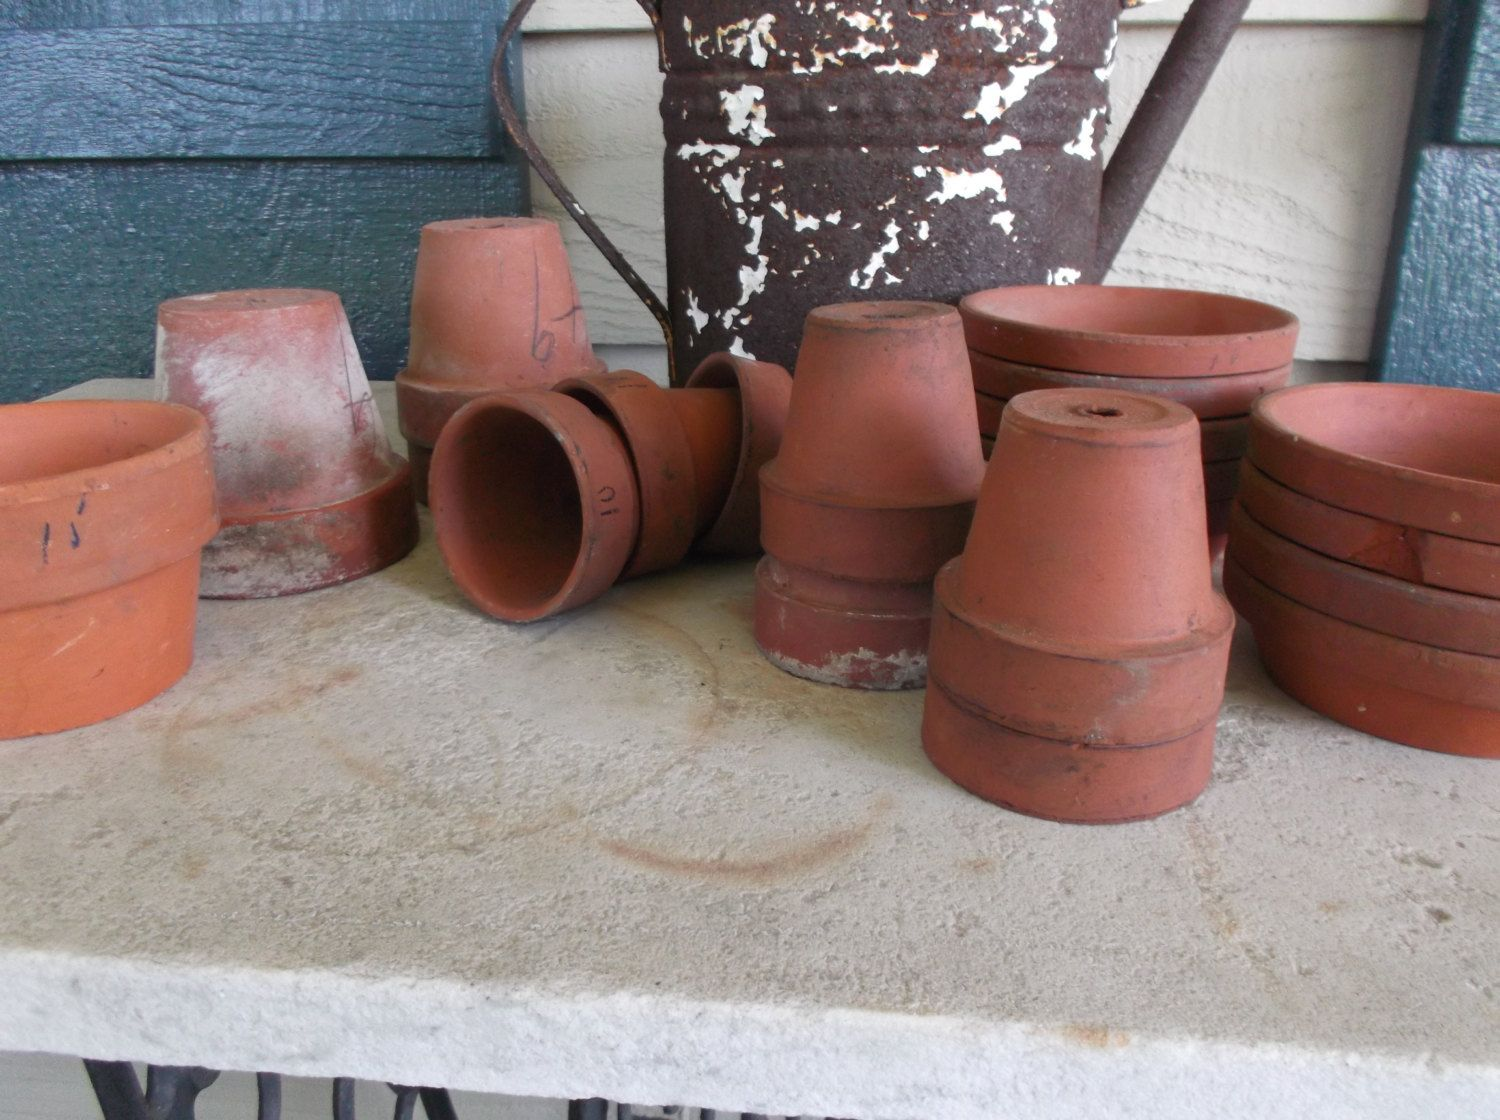 Lot 20 Pcs Vintage Small Terra Cotta Pots And Saucers For Indoor And Outdoor Planting Small Terracotta Pots Terracotta Pots Terracotta